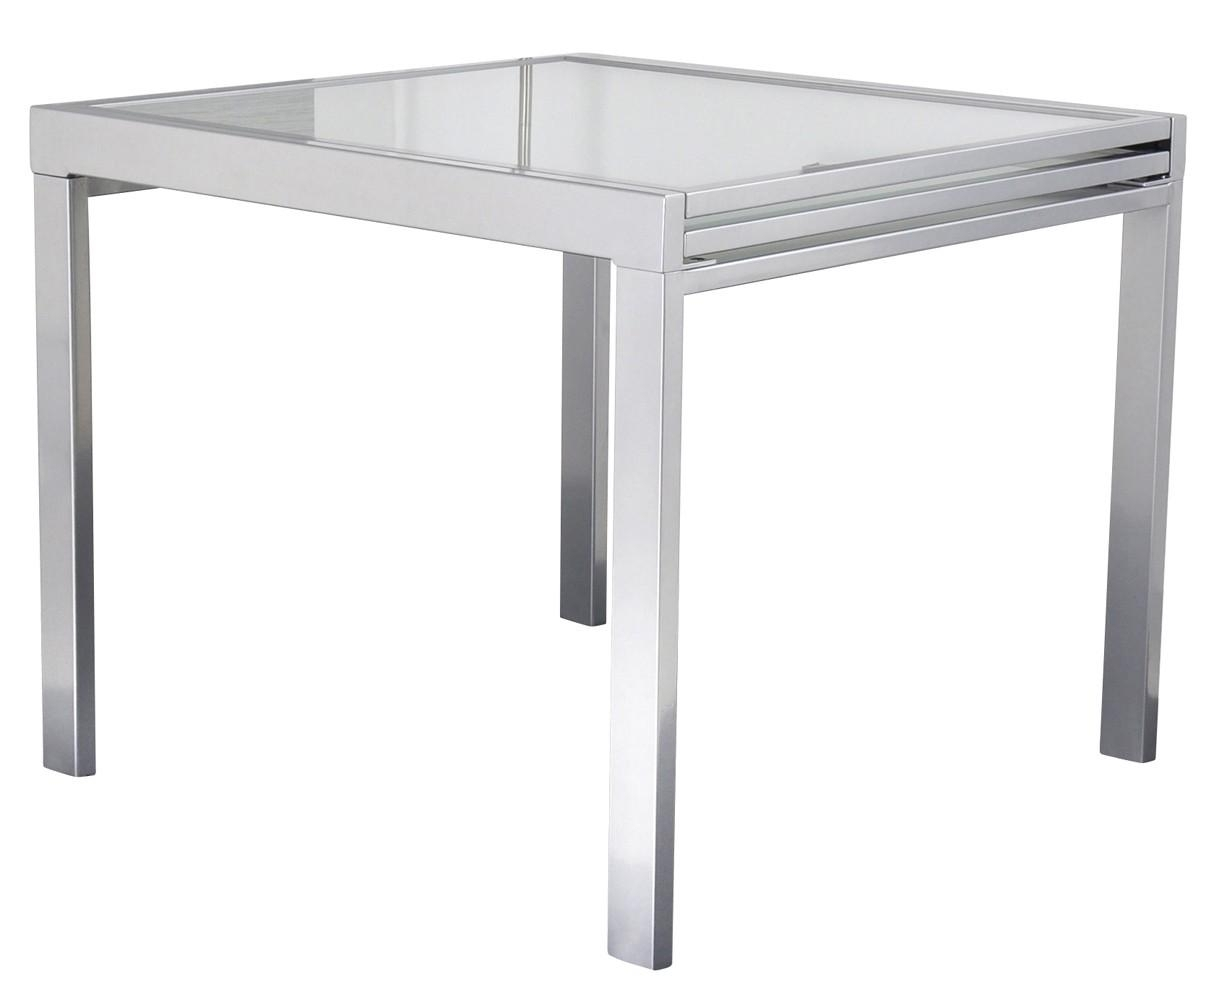 Les tendances table carr e extensible grise - Table carre extensible ...